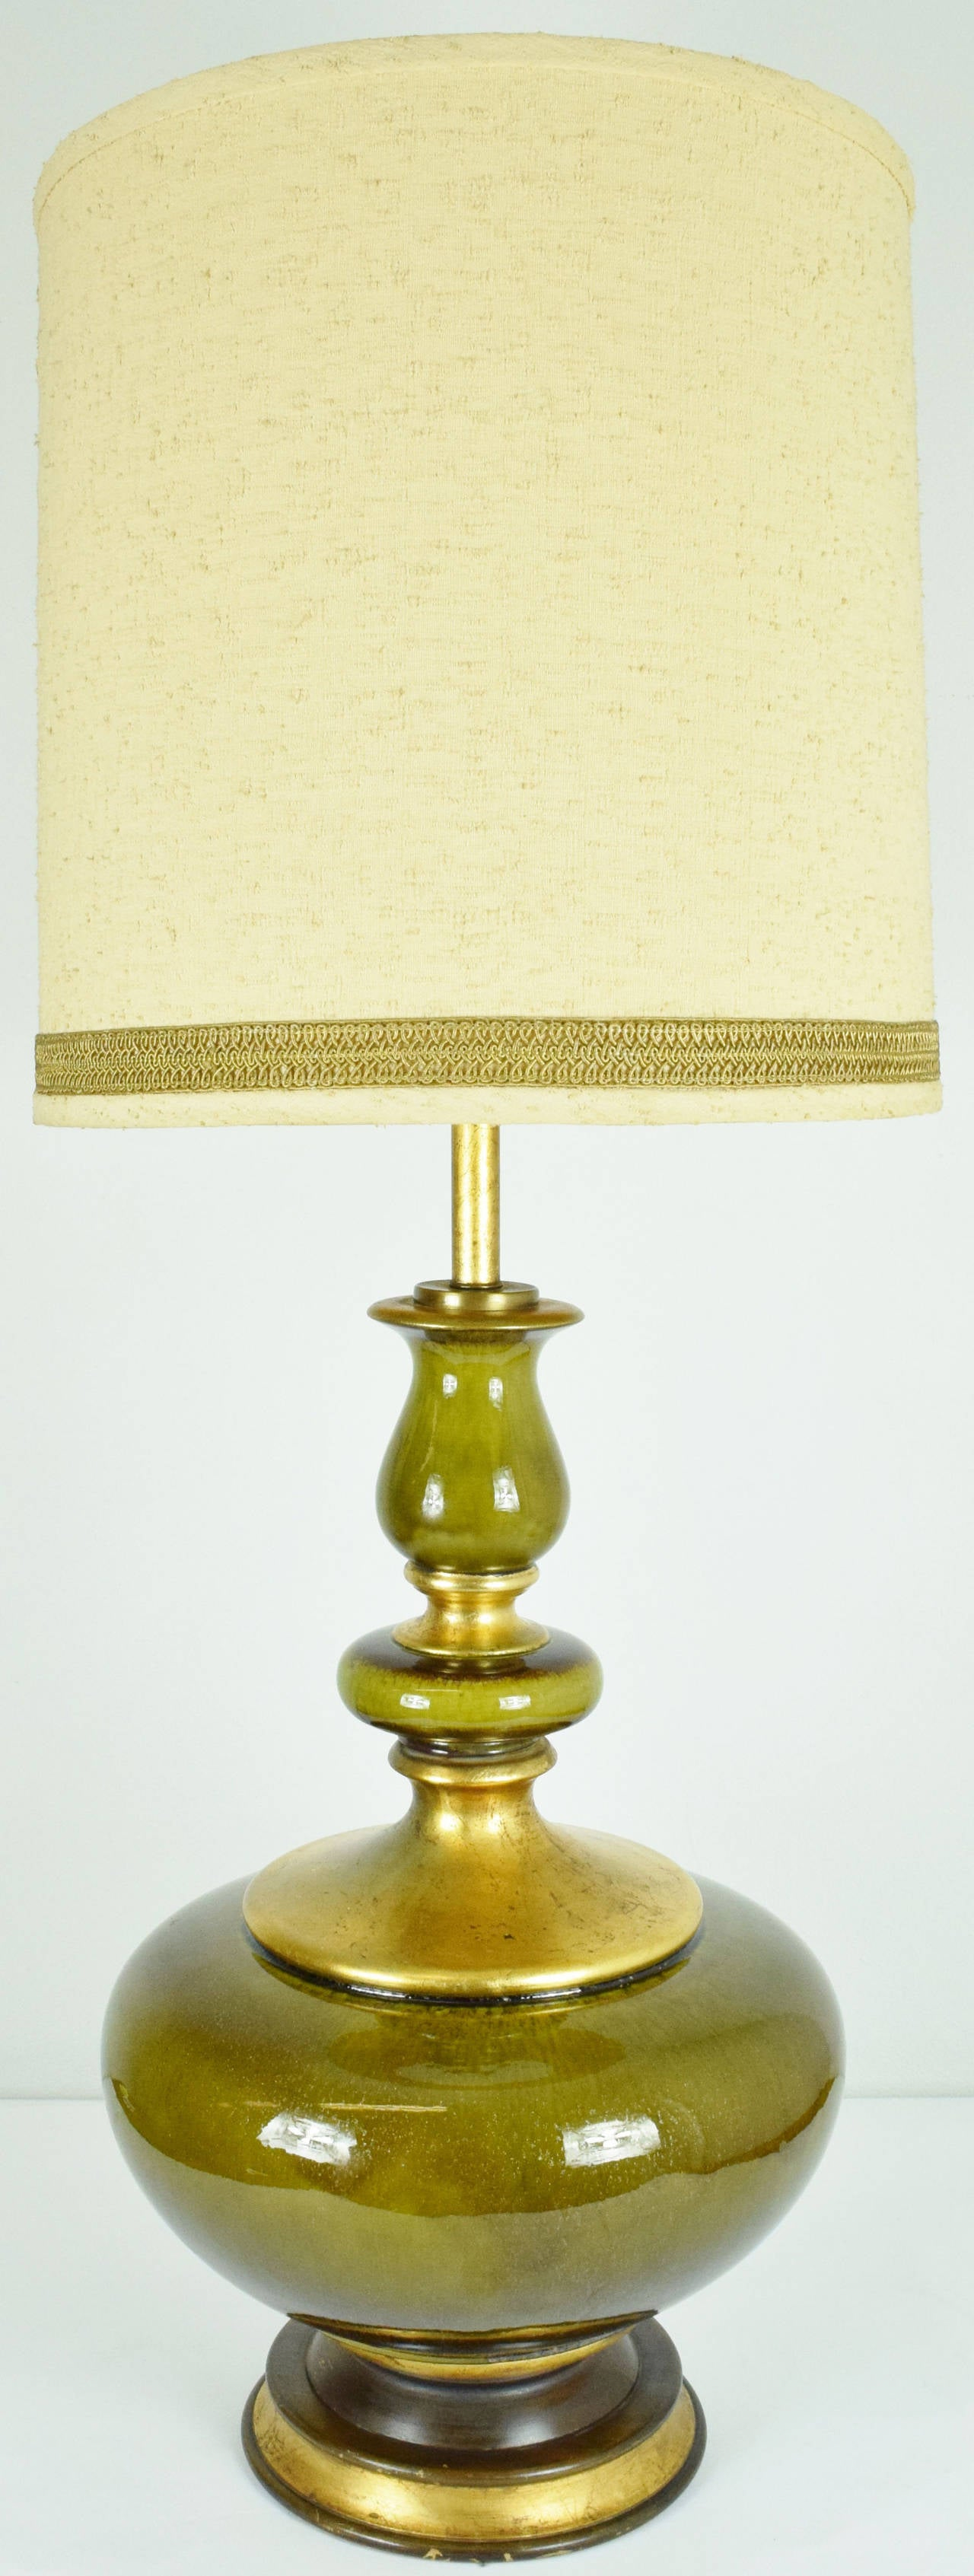 This is a gorgeous lamp in ceramic with beautiful gold flecking. The lamp has the original shade and is 37